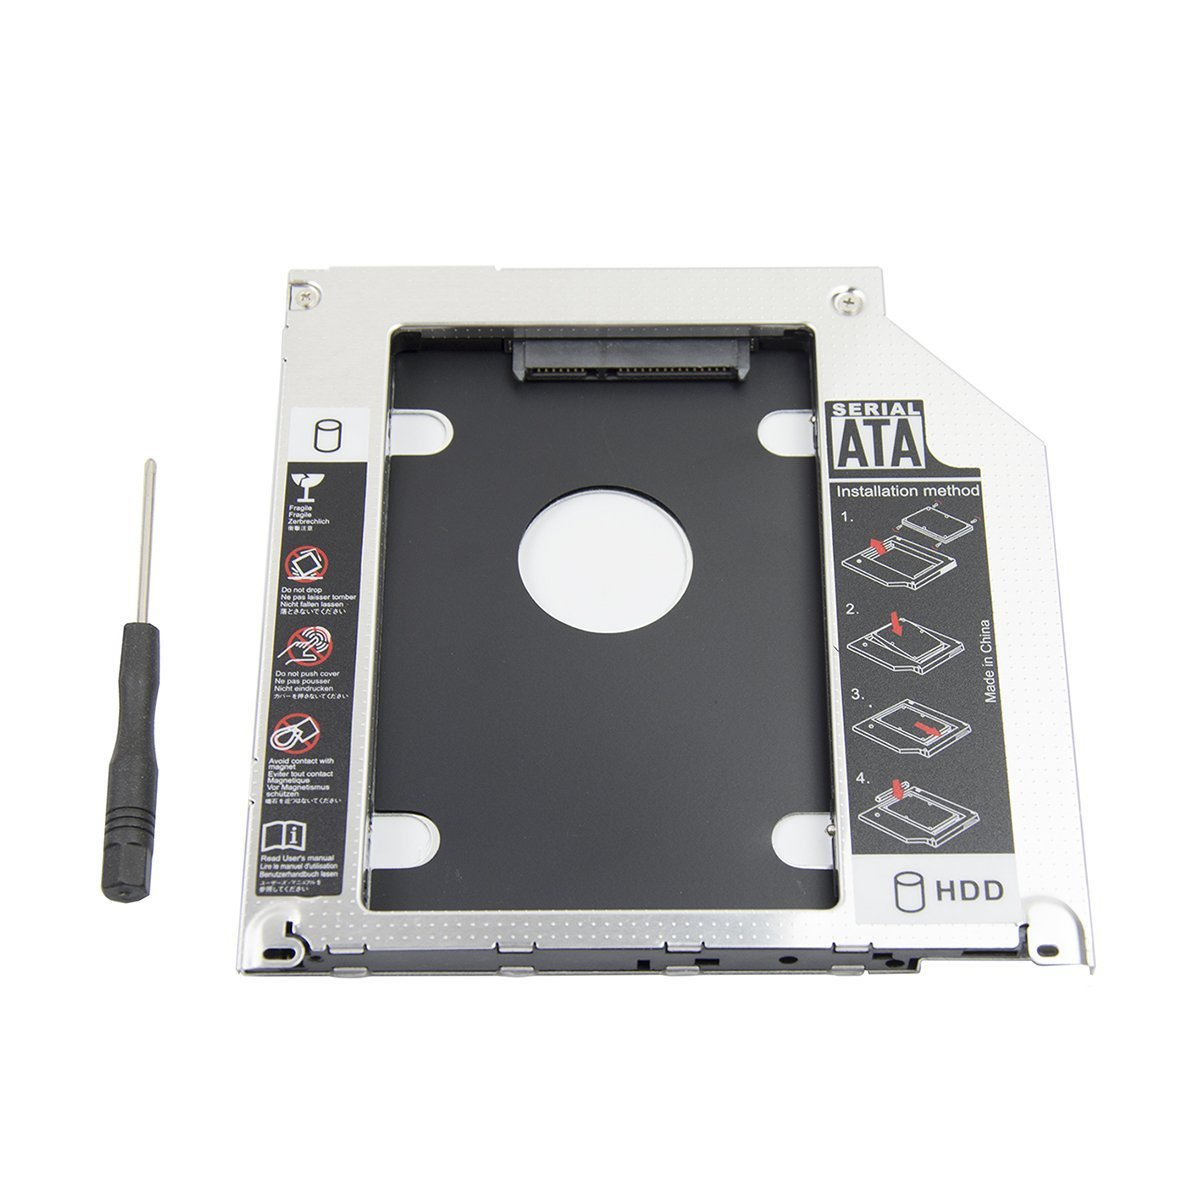 2nd 2.5'' SATA HDD SSD Hard Drive Disk DVD CD ROM Optical SuperDrive Caddy Tray Adapter for Apple Unibody MacBook/MacBook Pro 13 15 17 Early mid Late 2008 2009 2010 2011 2012.etc